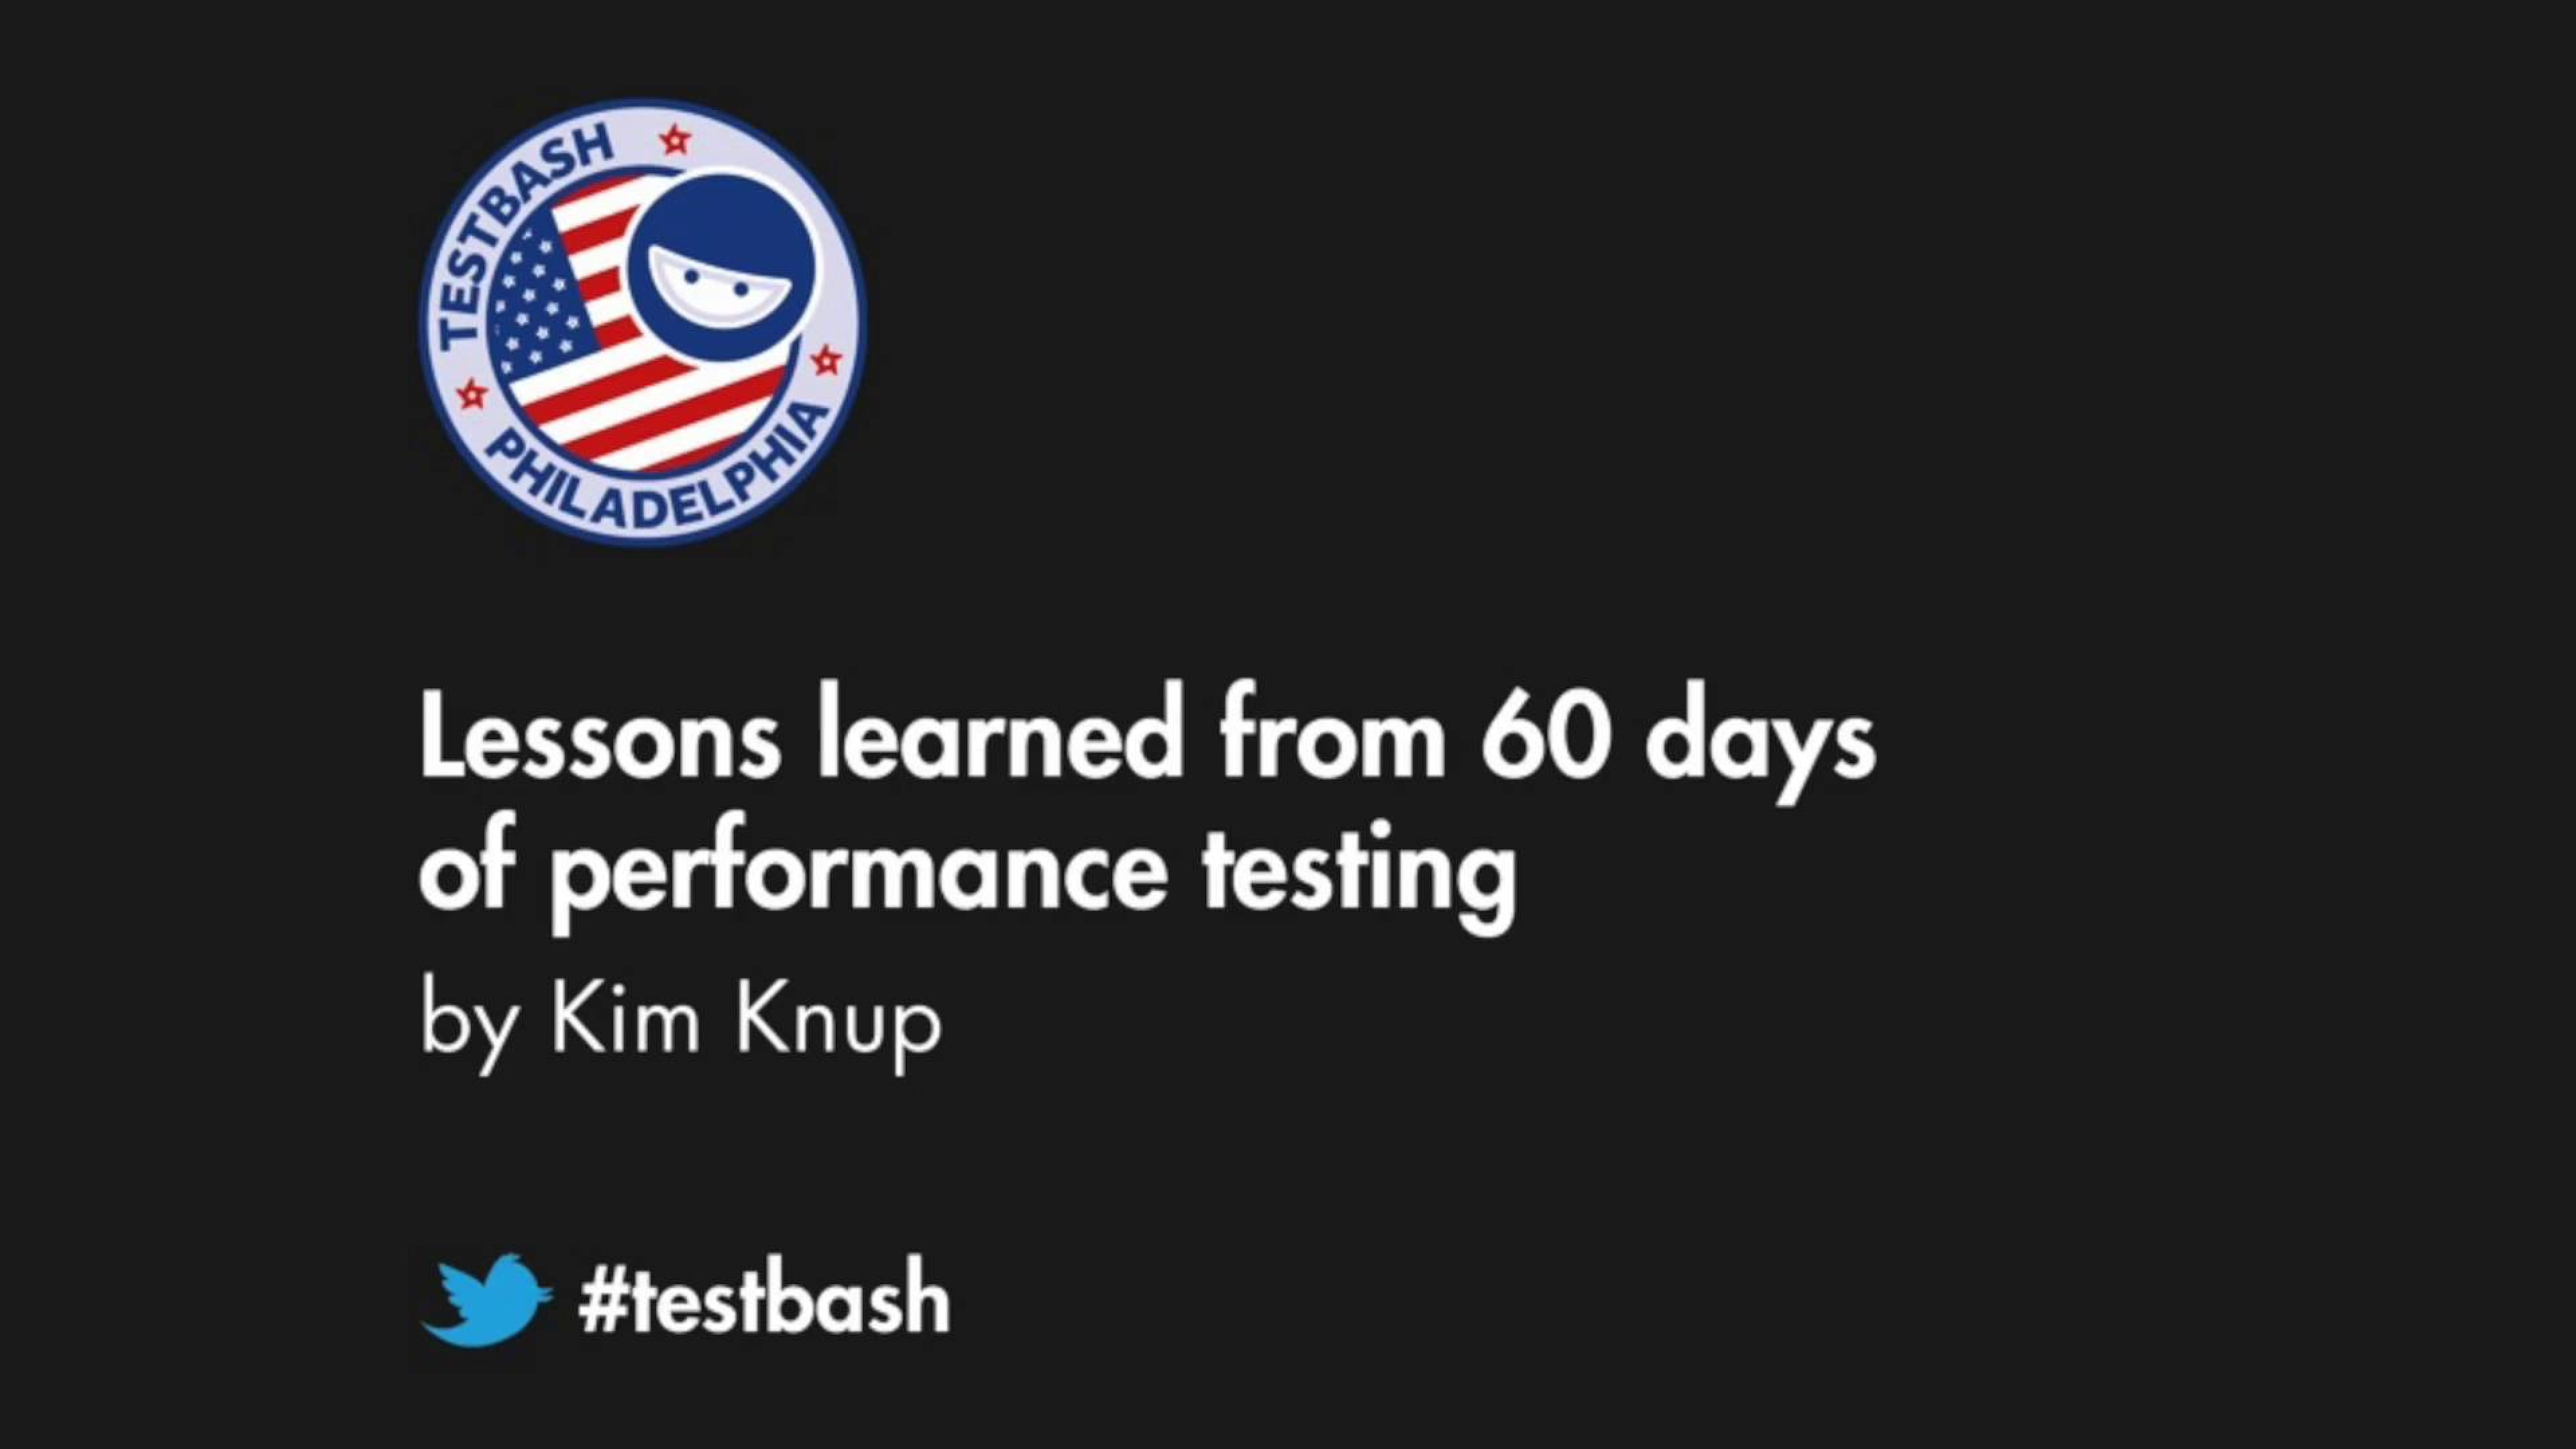 Lessons Learned From 60 Days of Performance Testing - Kim Knup